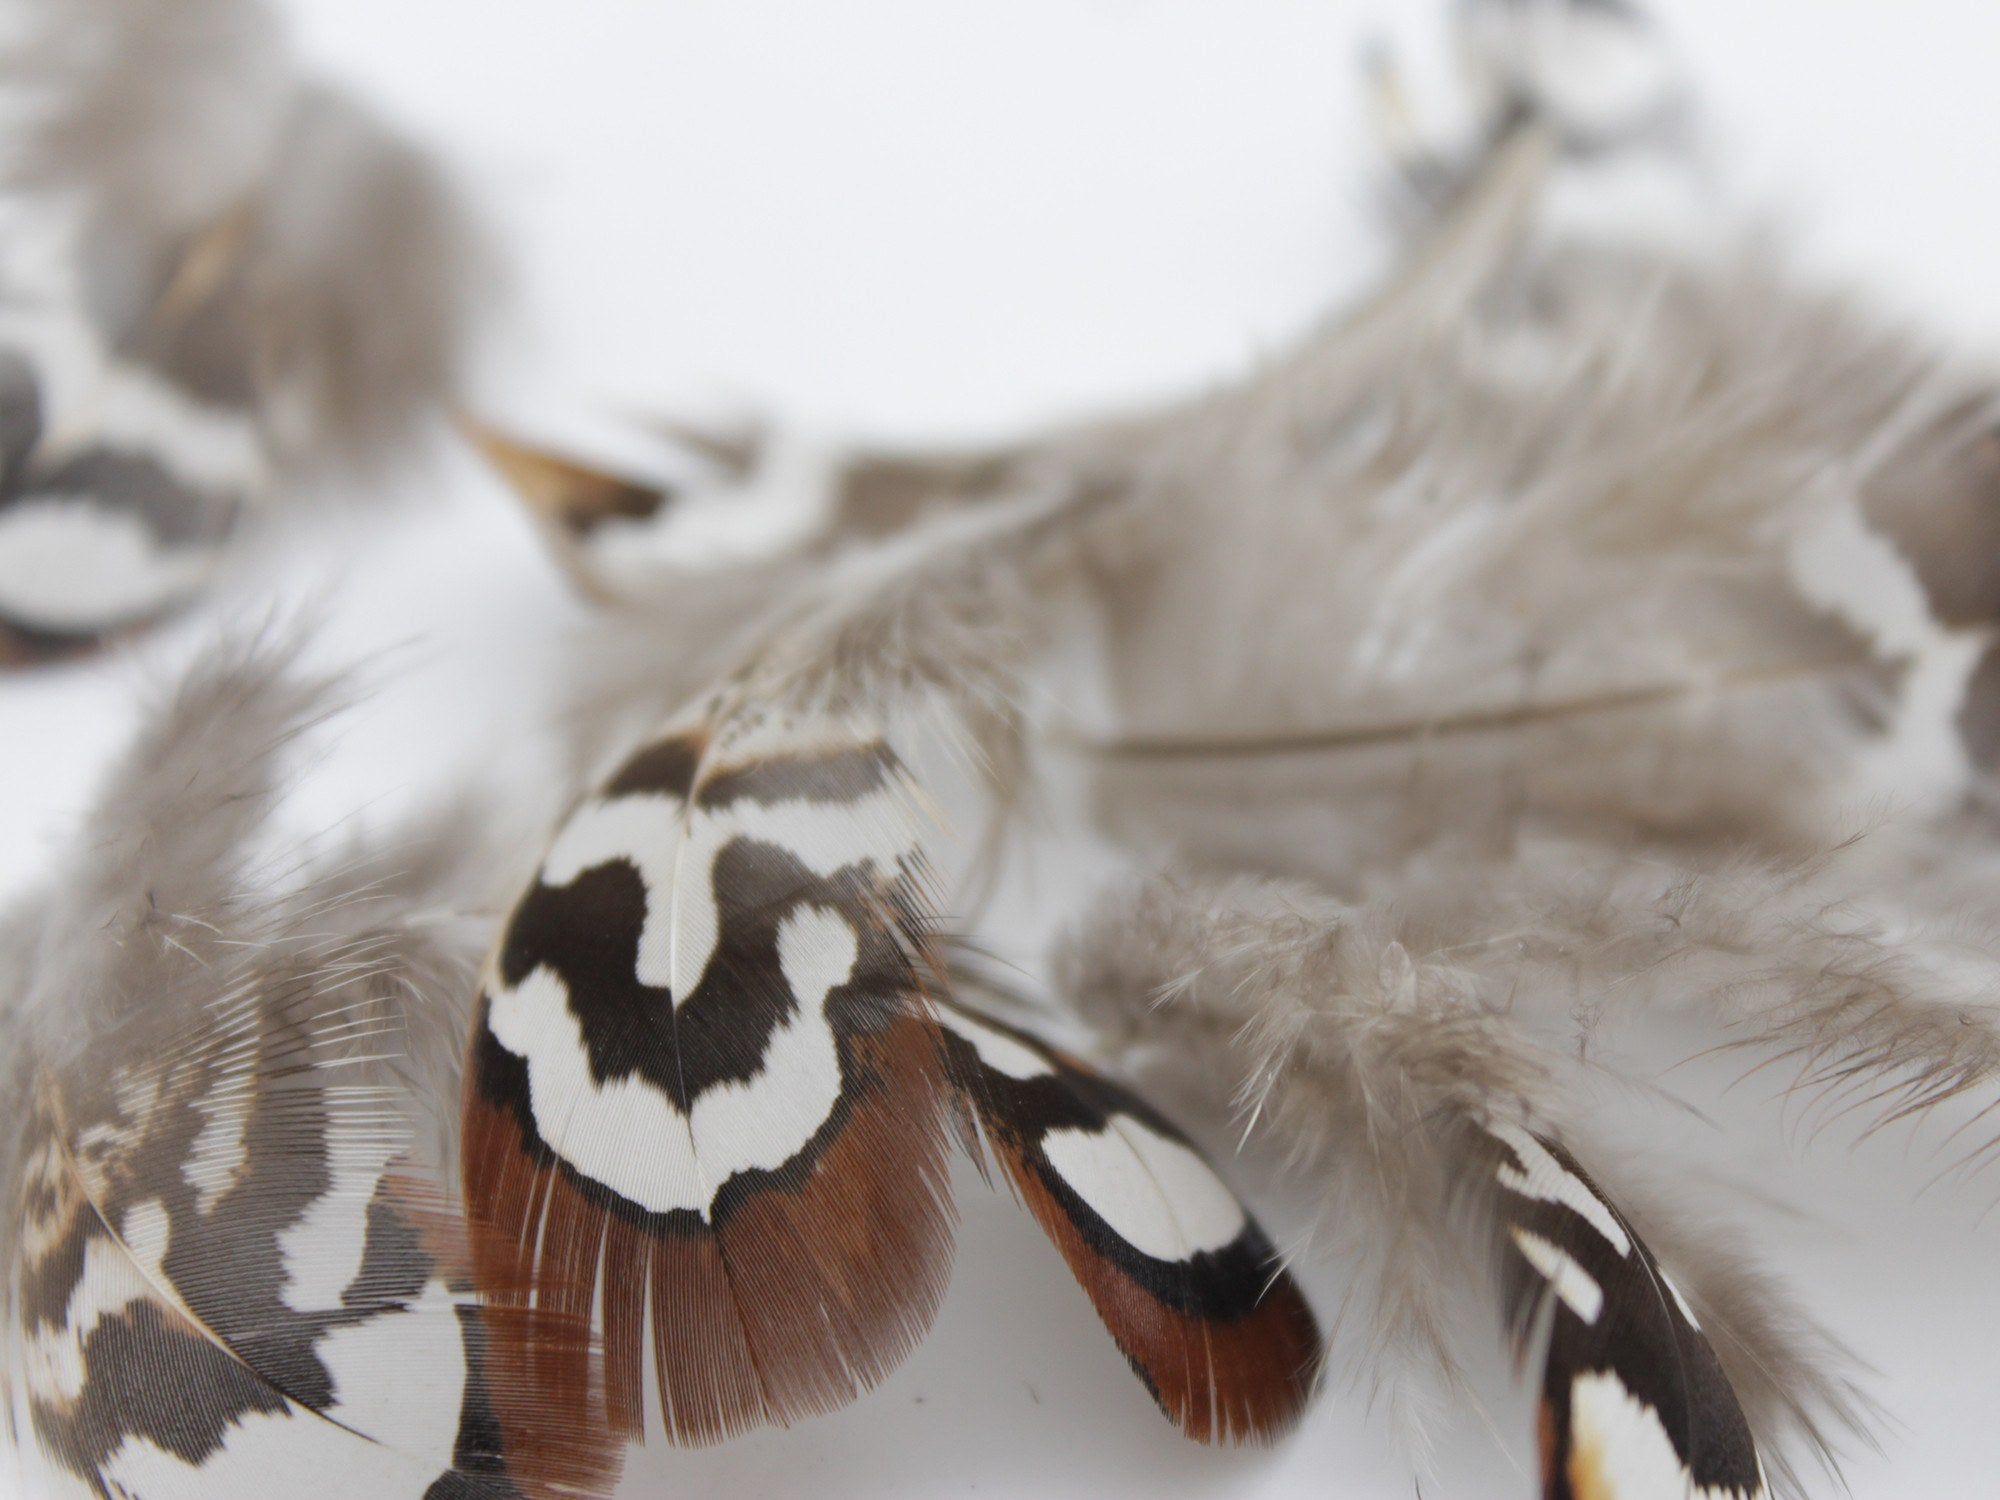 How to clean pheasant feathers - Reeves Venery Pheasant Brown Plumage Feathers